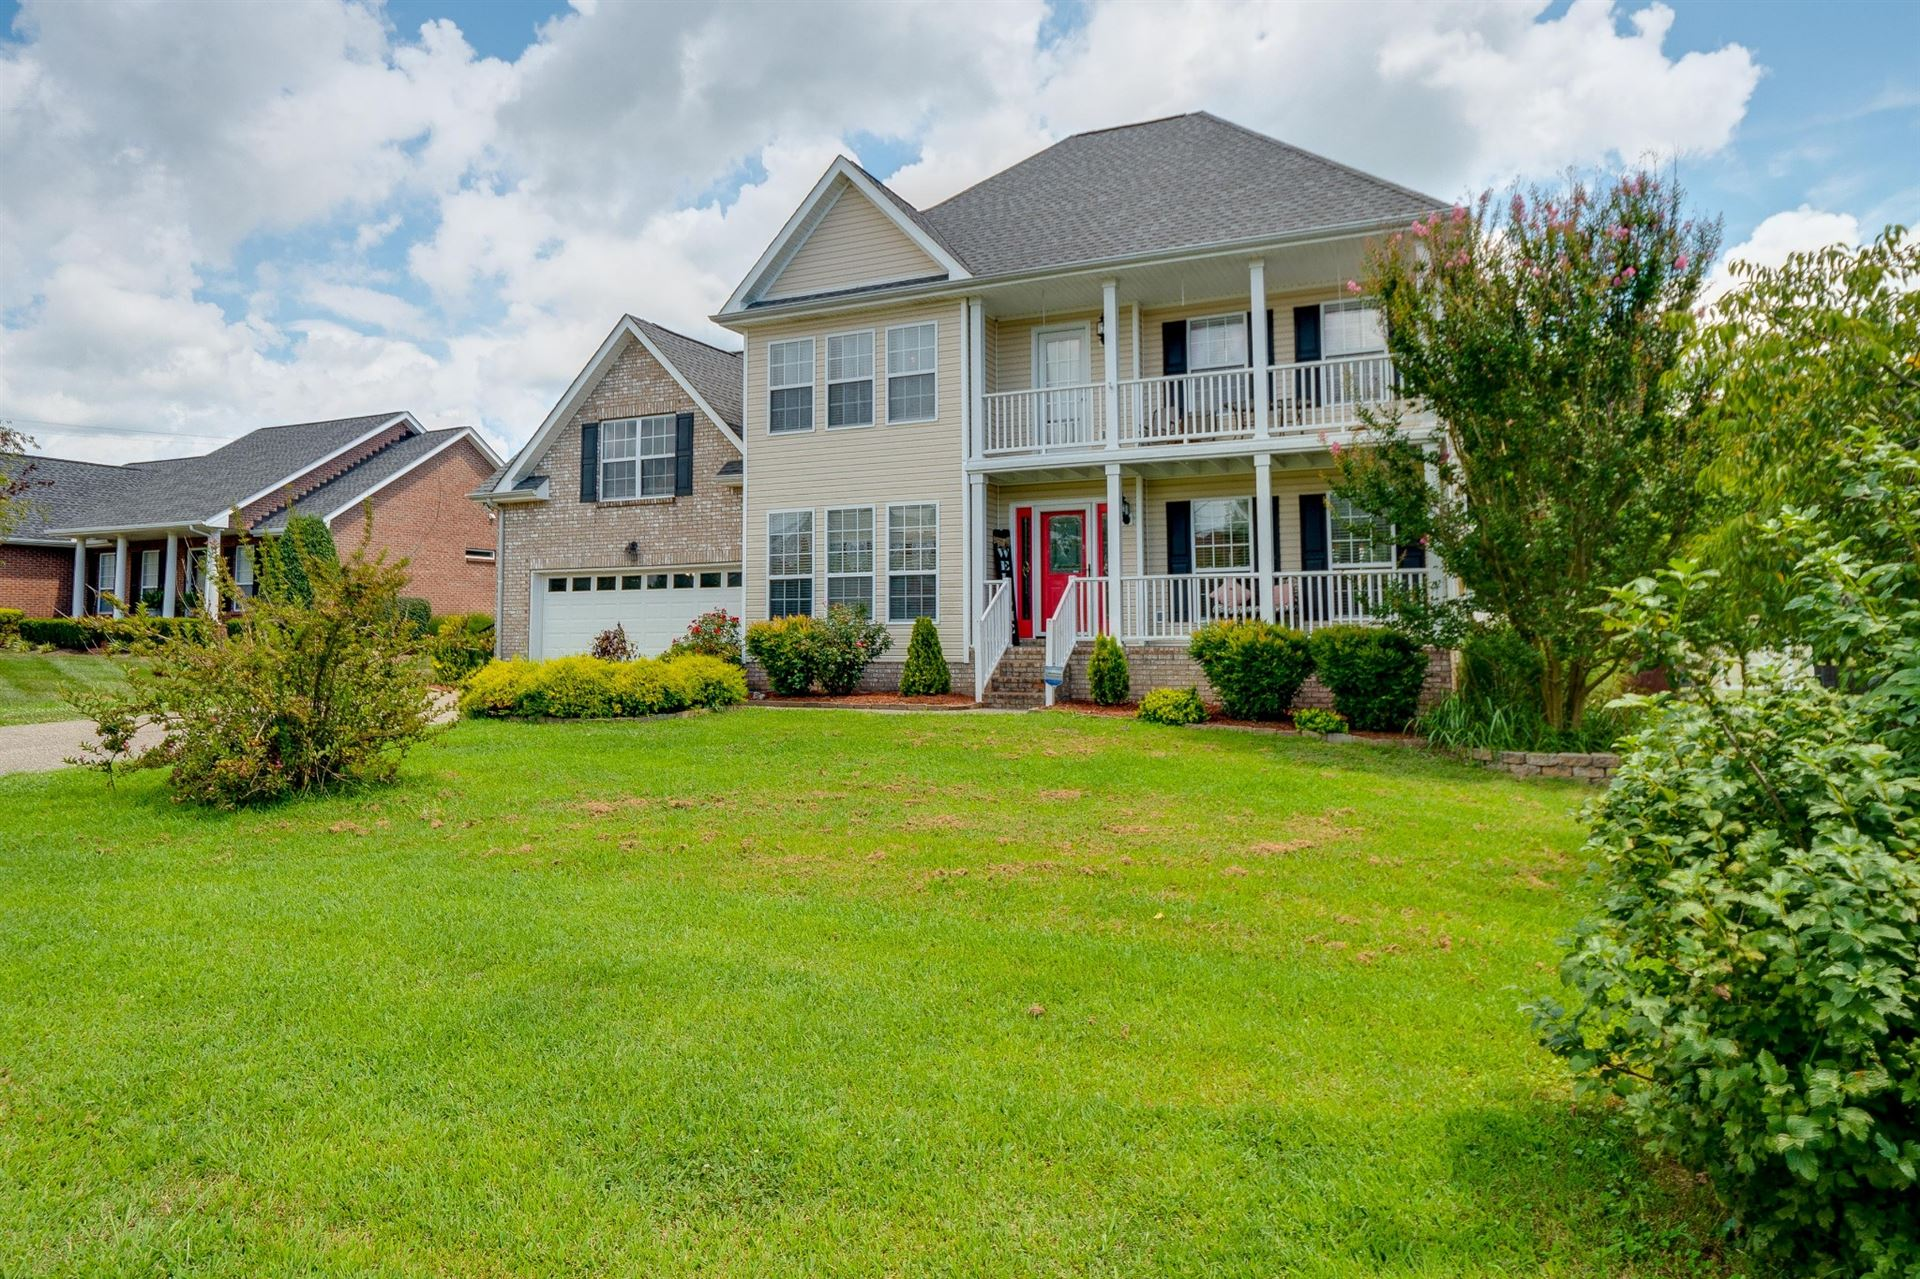 1232 Wentworth Dr, Gallatin, TN 37066 - MLS#: 2174843